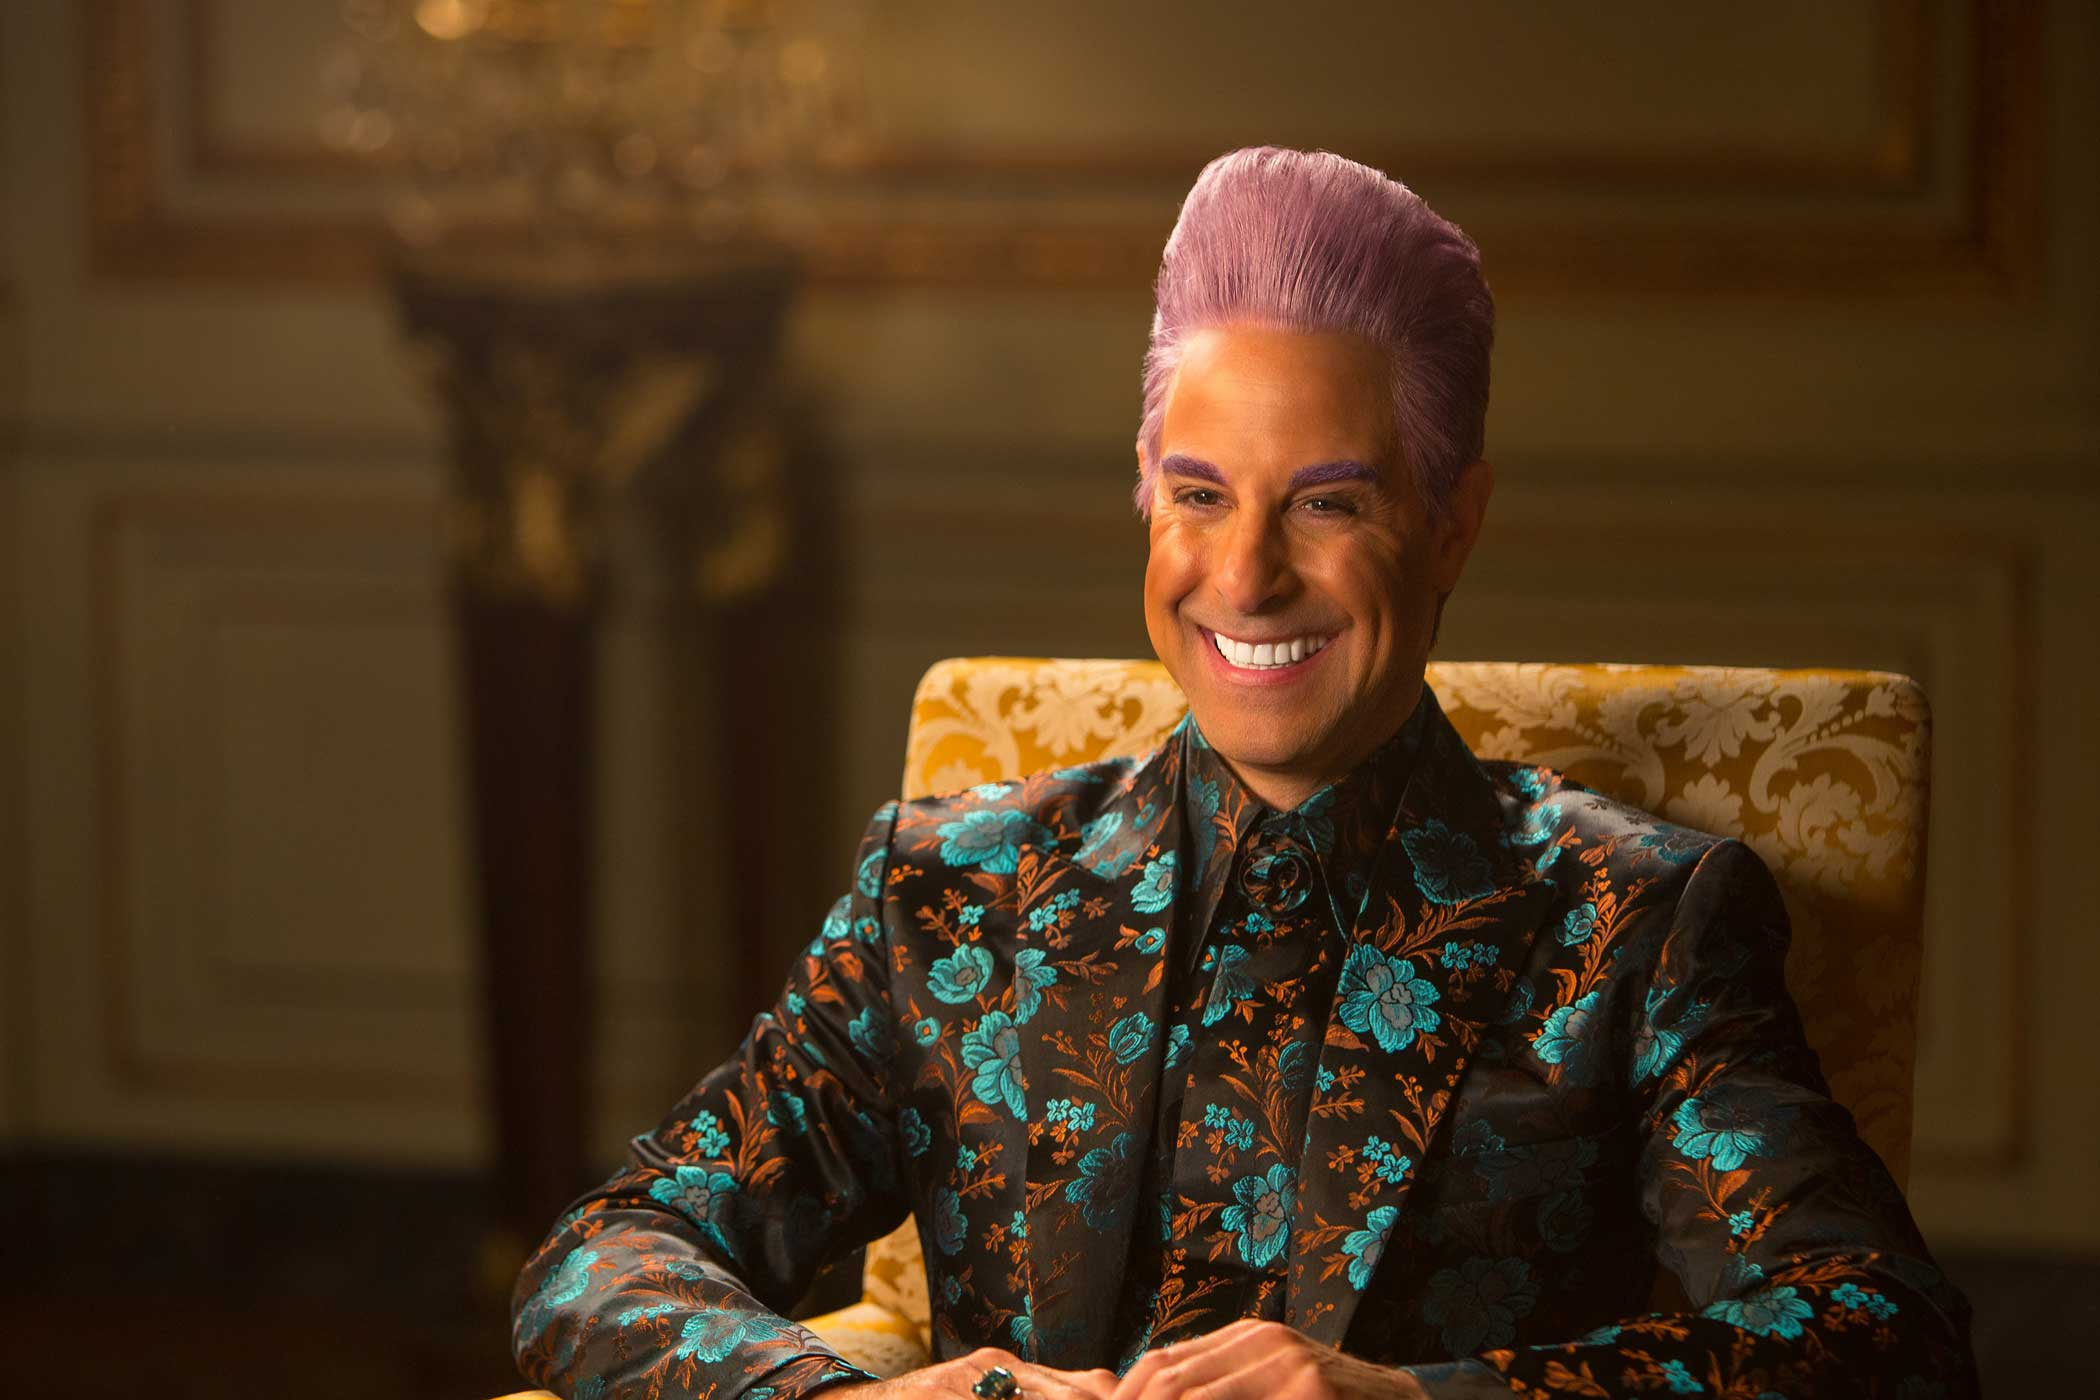 Stanley Tucci as Caesar Flickerman in The Hunger Games: Mockingjay – Part 1, 2014.